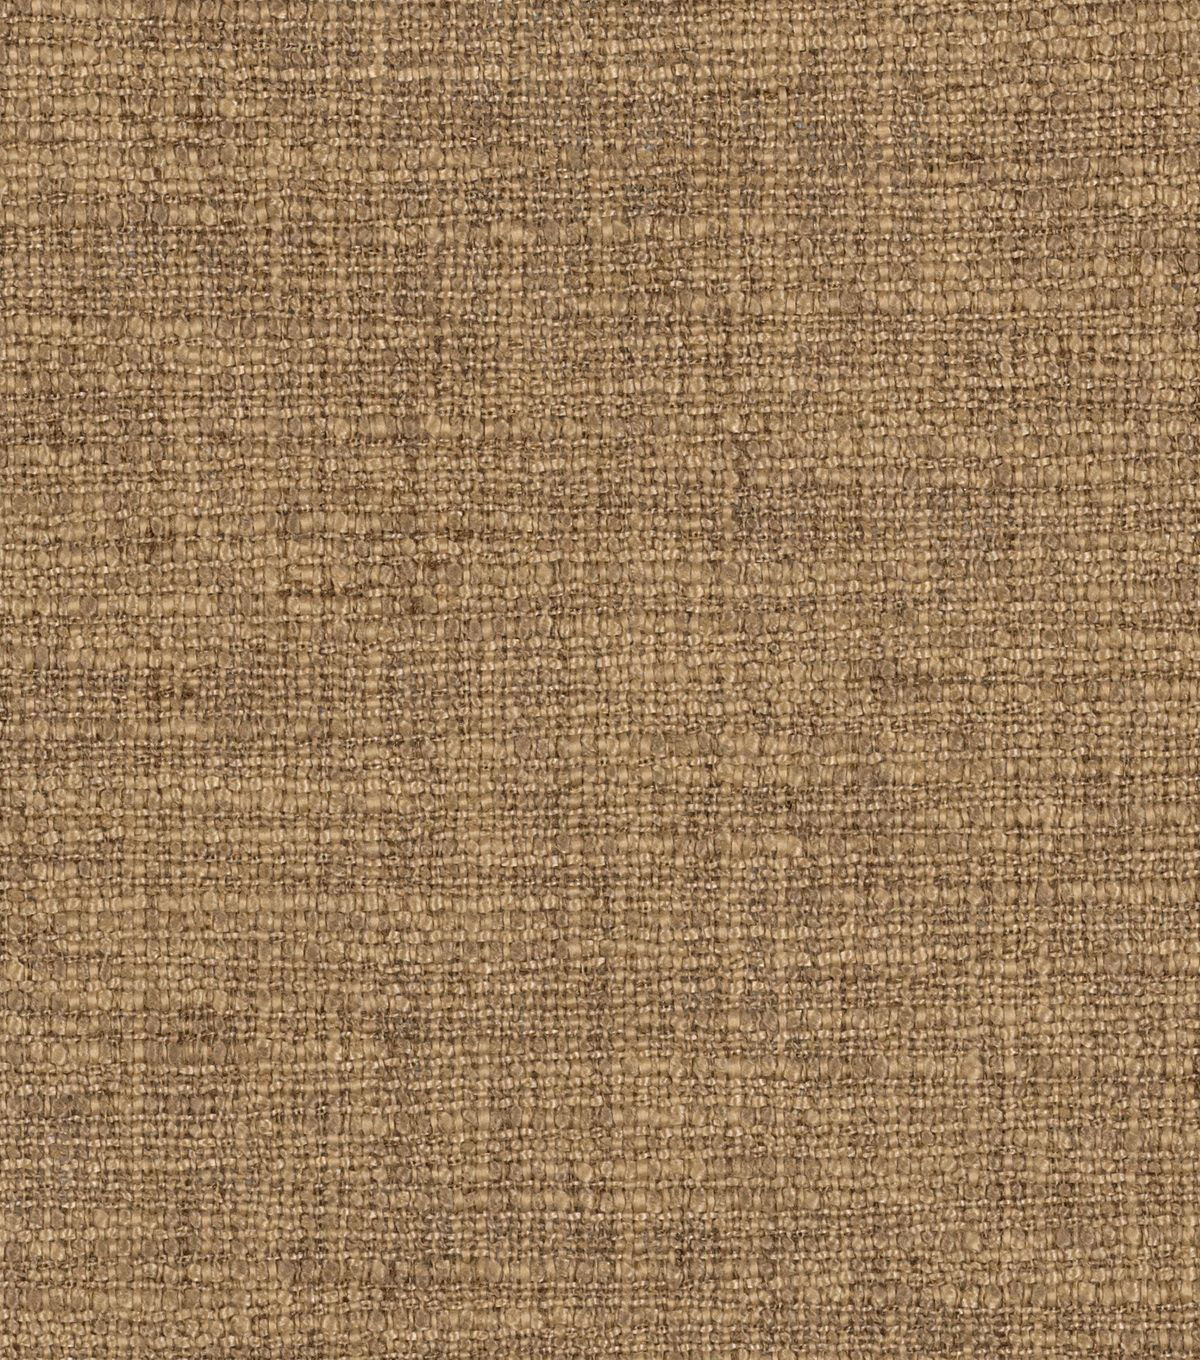 Crypton upholstery fabric 54 cross current wheat home decor fabric bar chairs